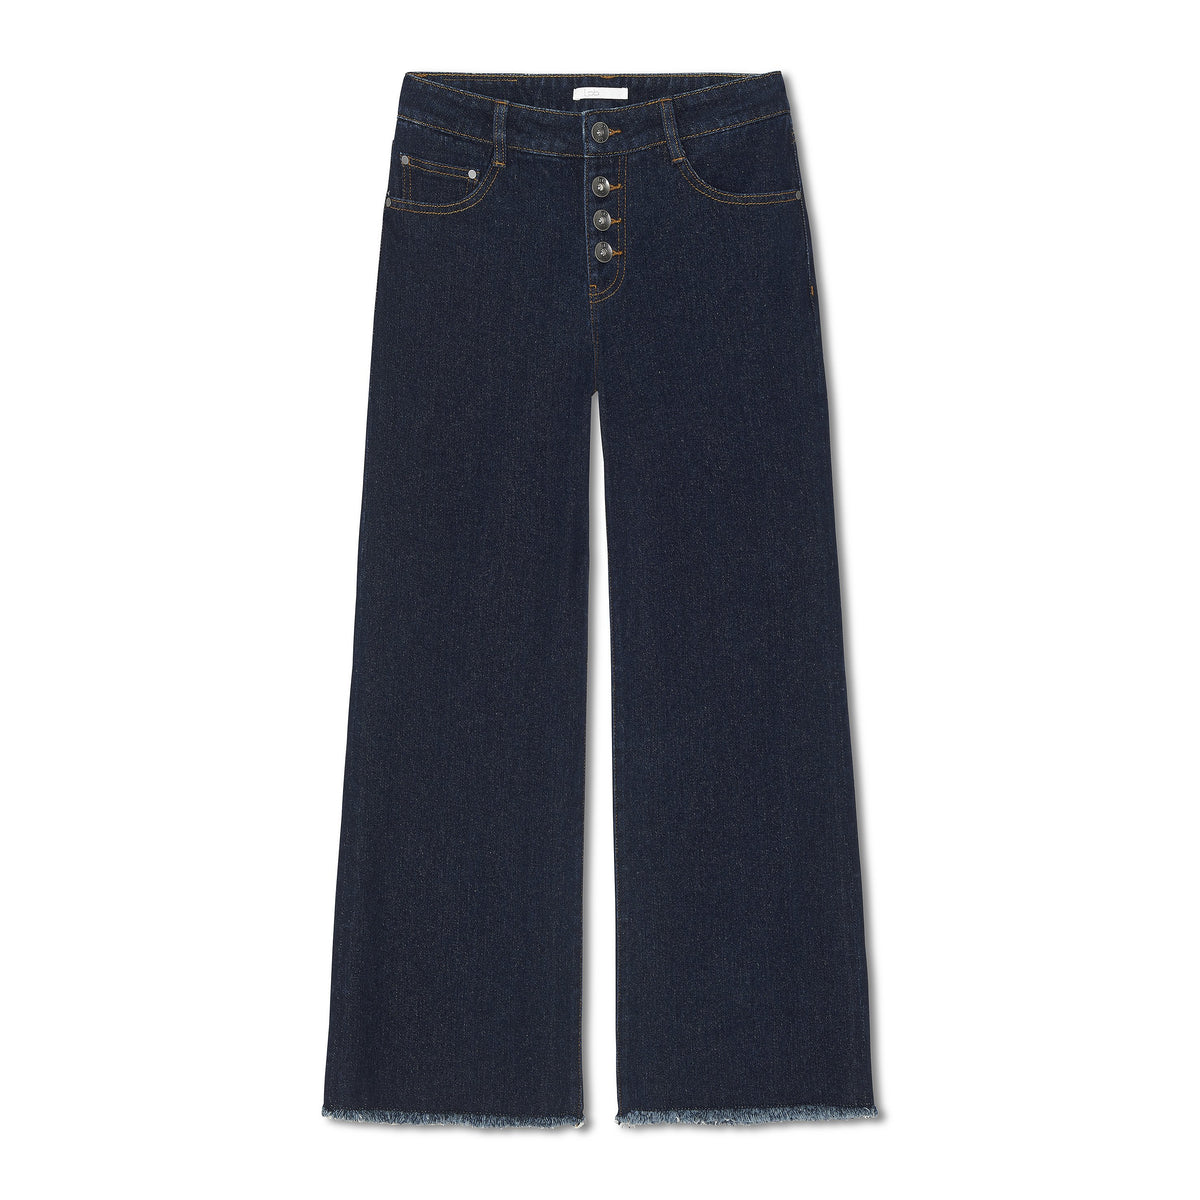 JEANS CROPPED AUDE